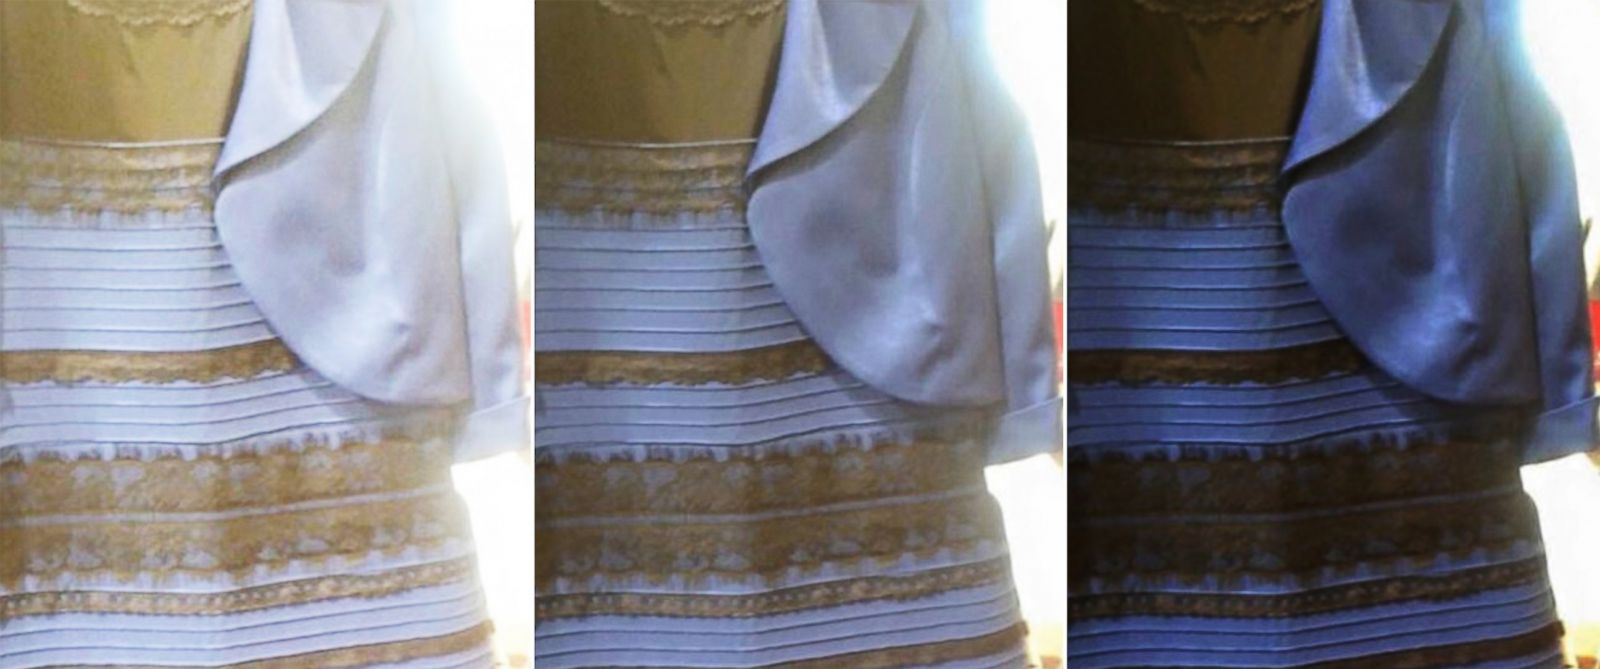 White And Gold Or Black And Blue Why People See The Dress